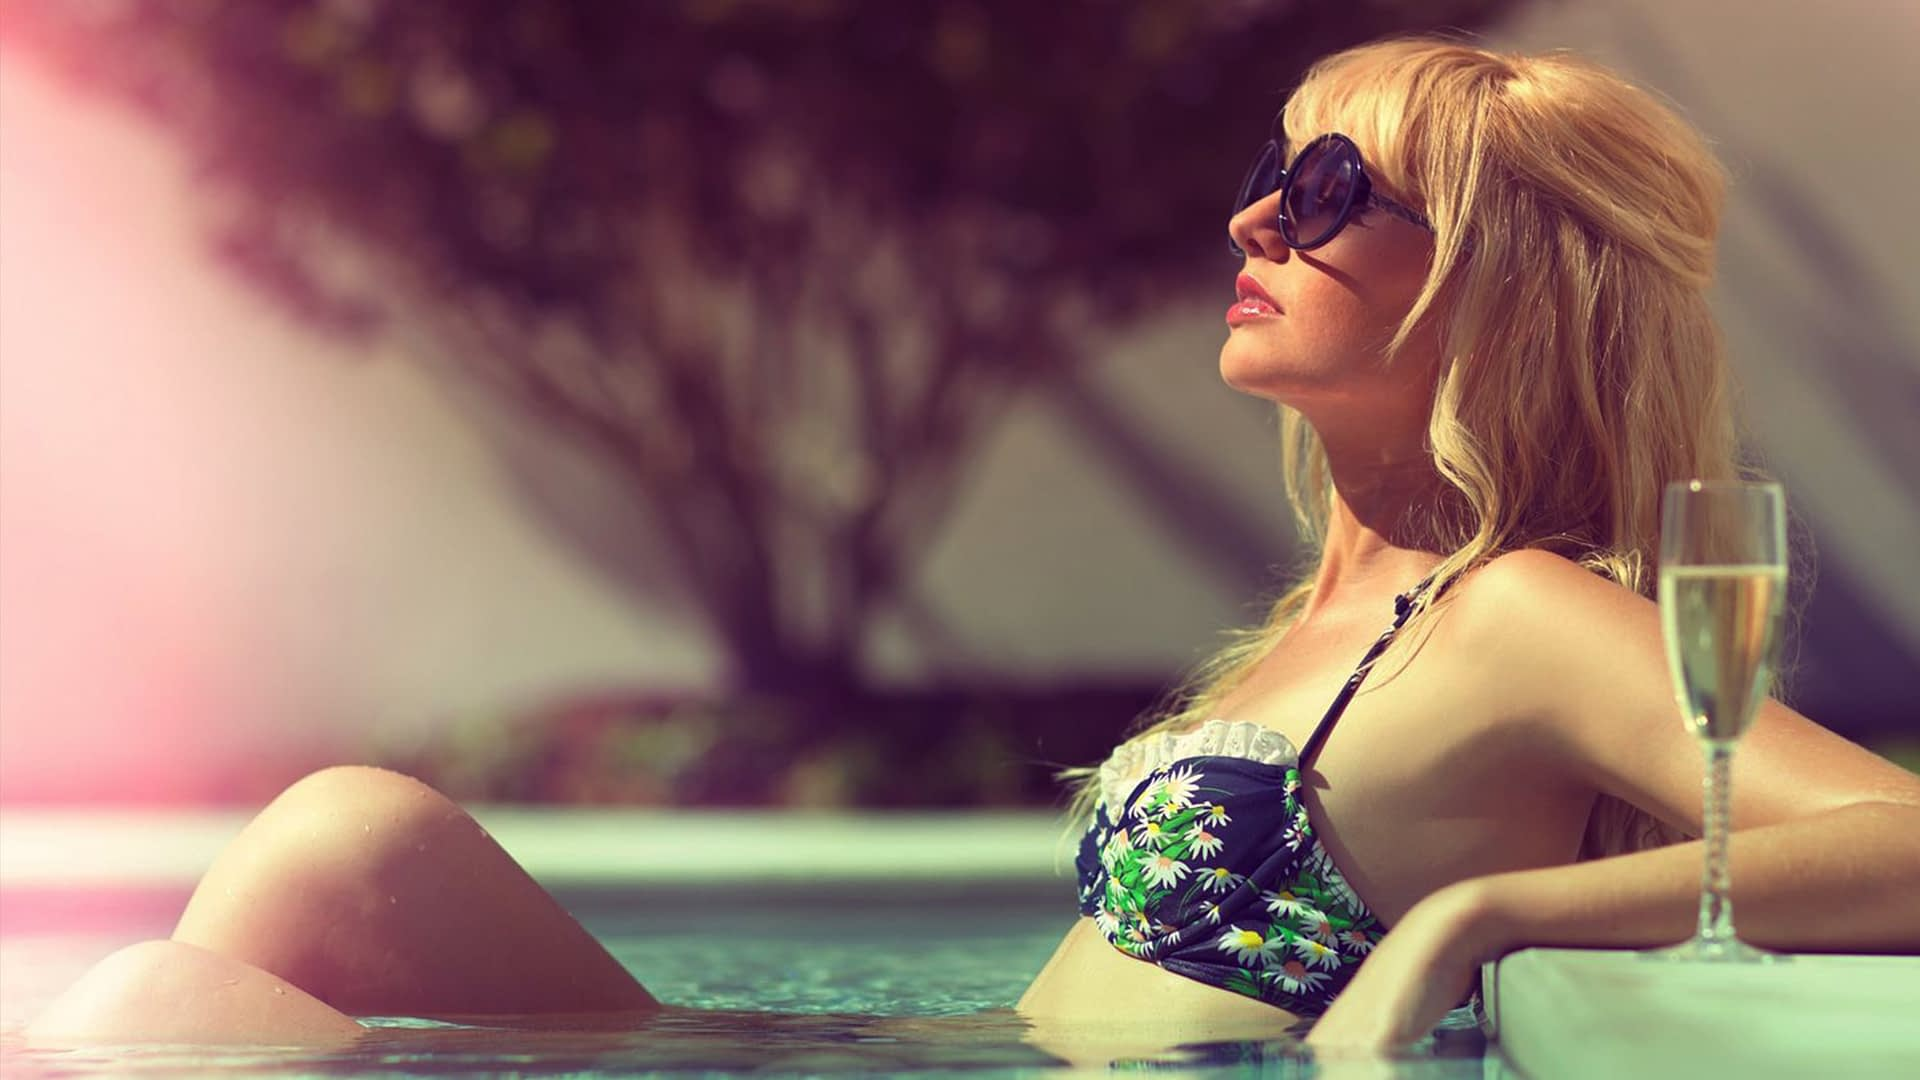 A woman in retro-looking bathing suit and sunglasses laying at the edge of Epicurean Hotel's pool with a glass of wine.